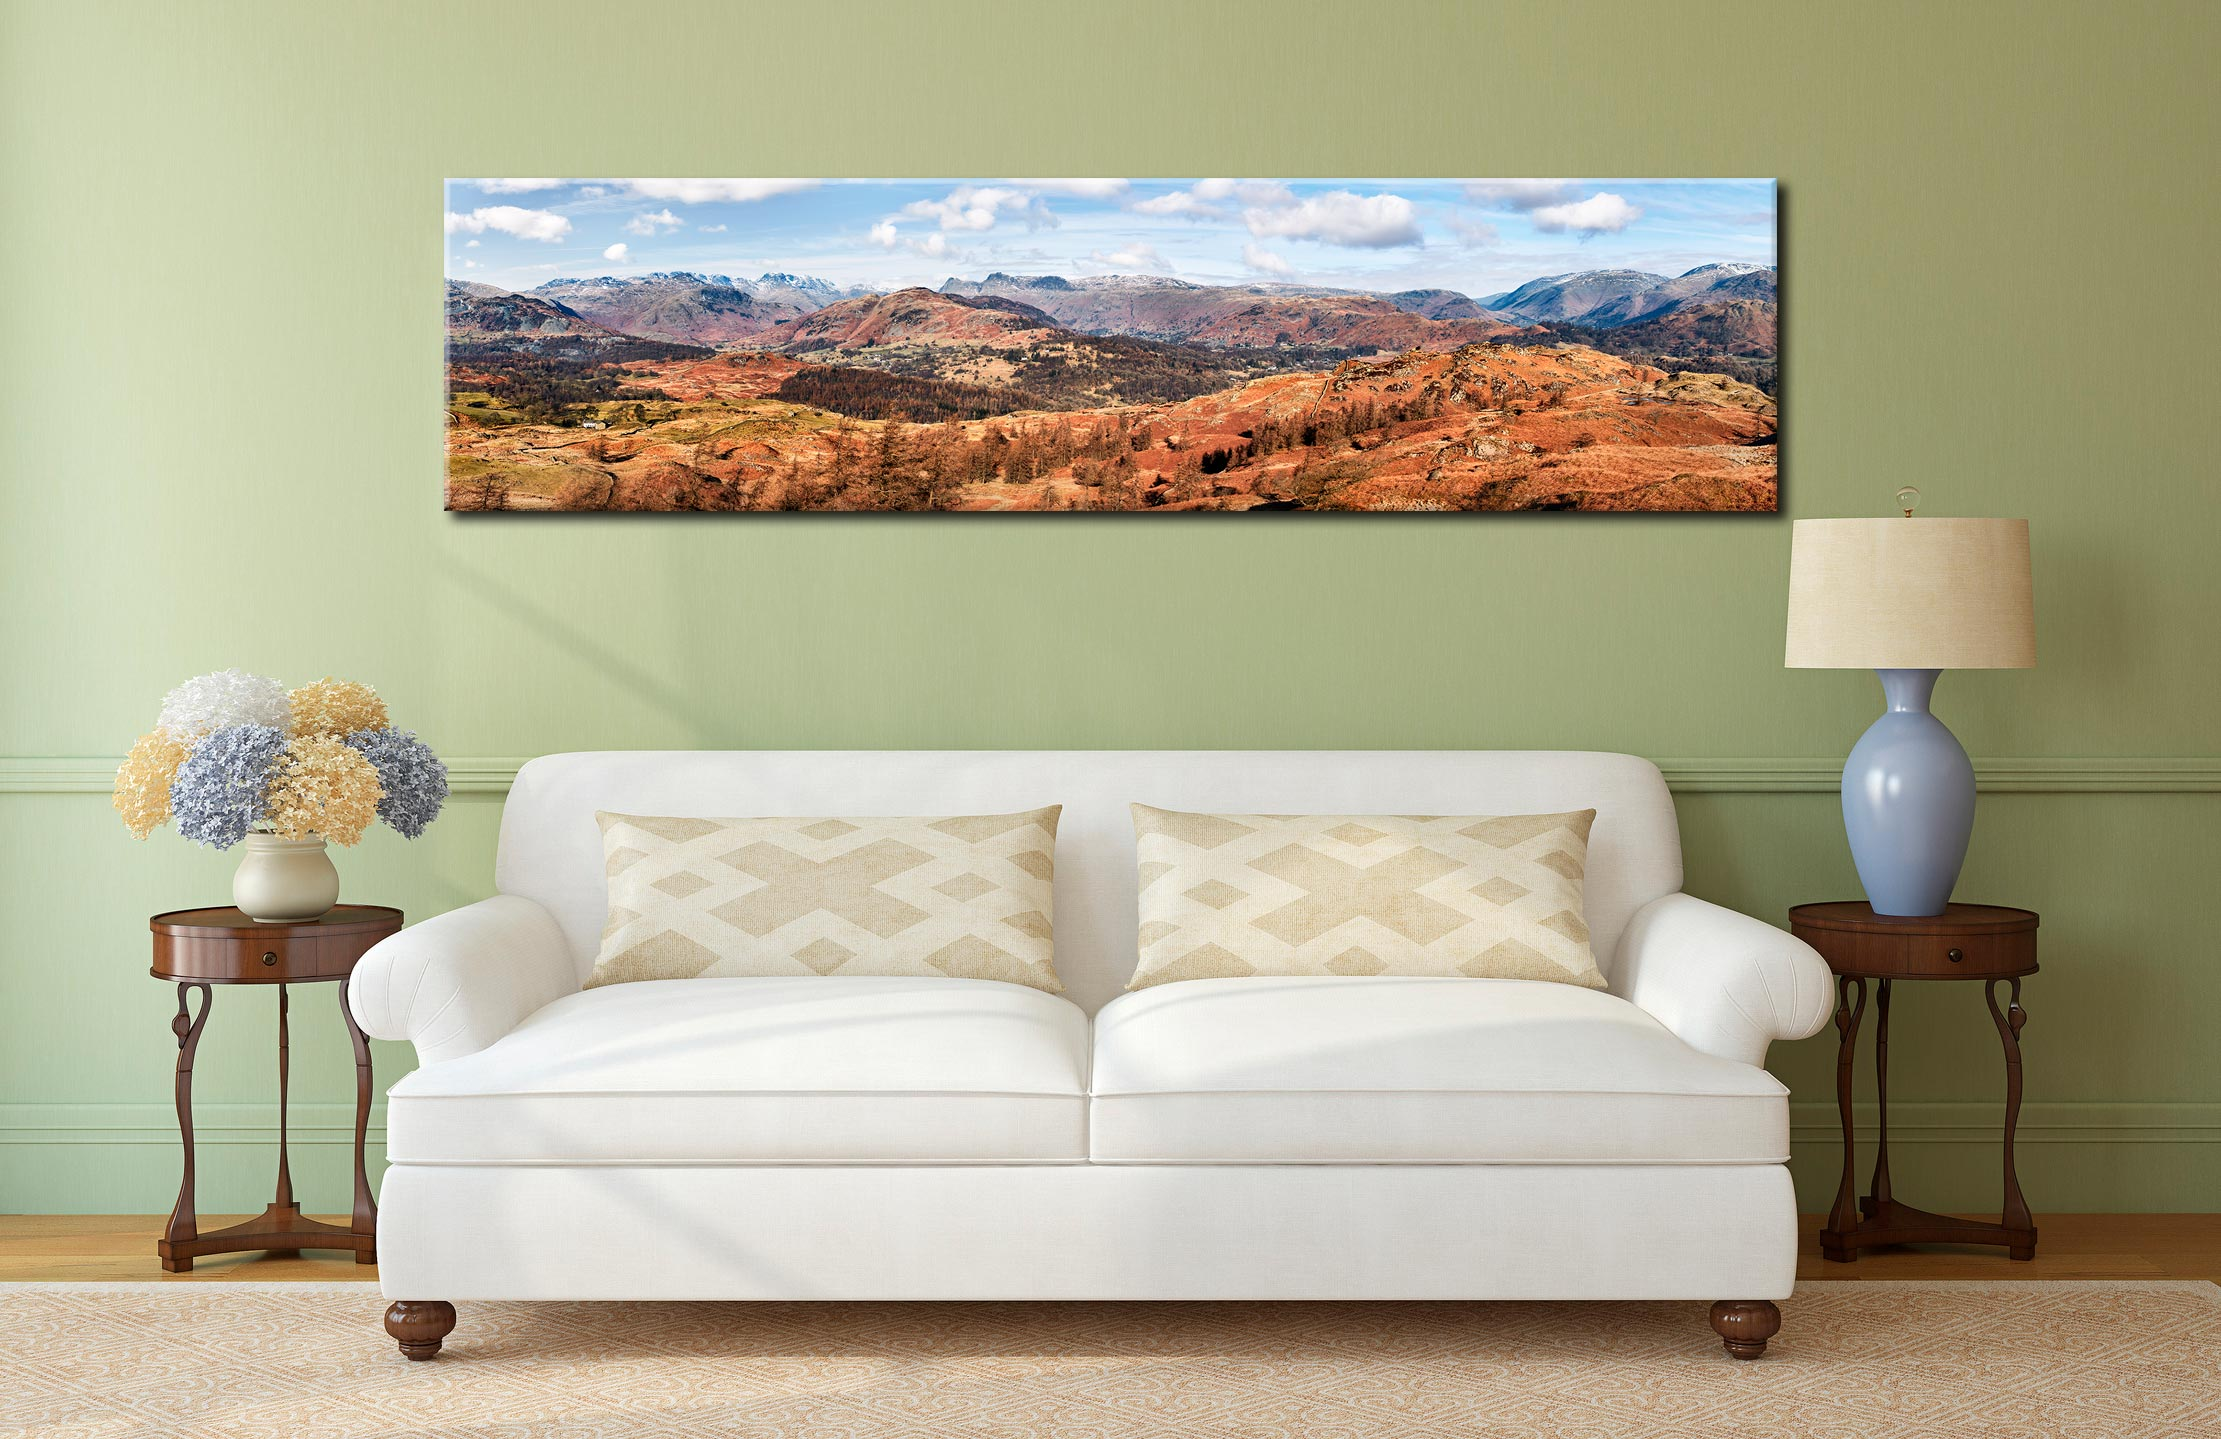 The Langdale Mountains - Lake District Canvas on Wall